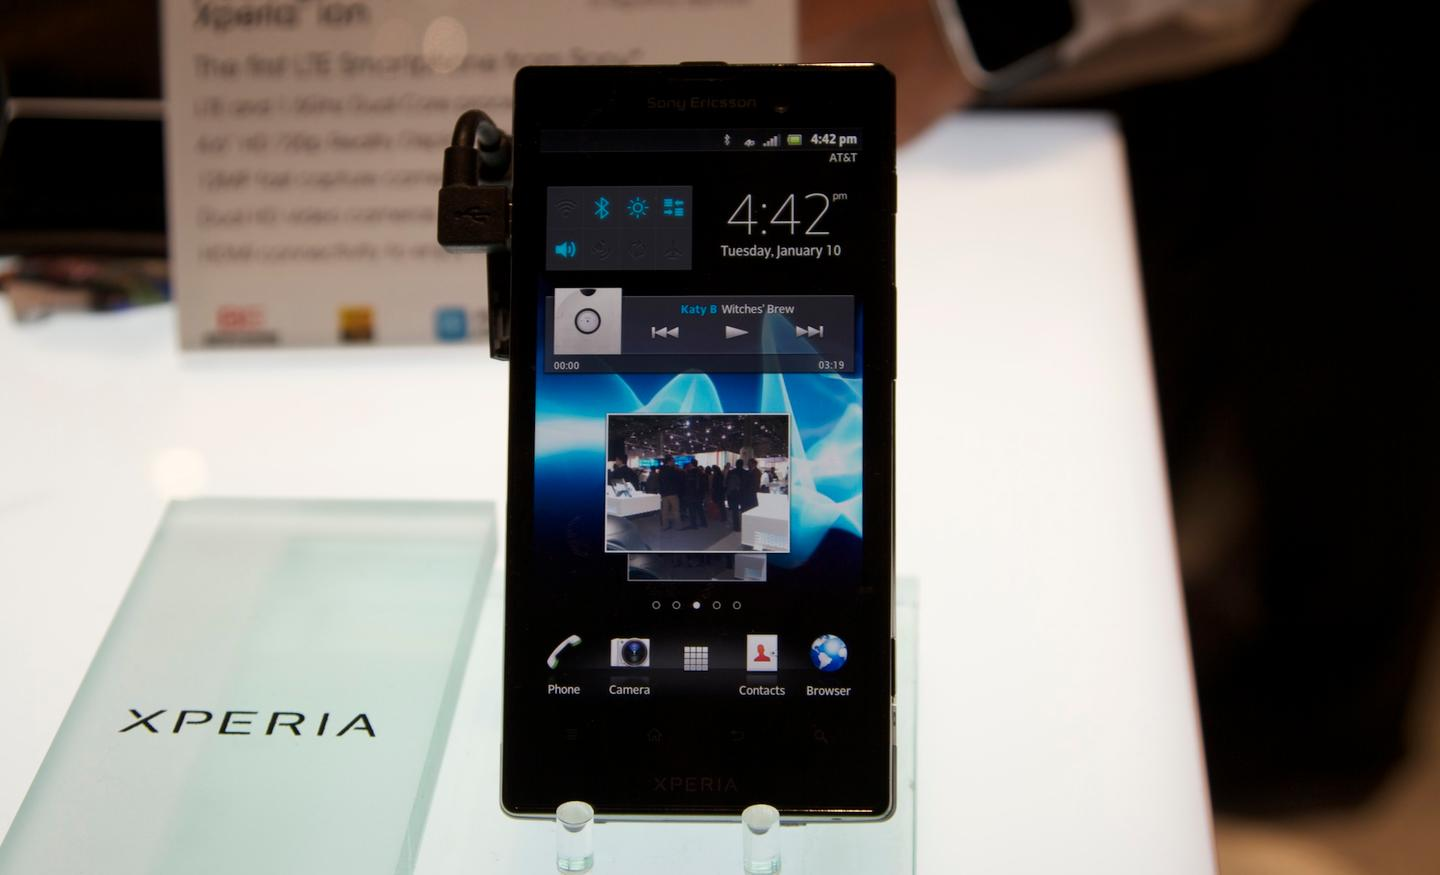 Sony's Xperia ion features a 4.6-inch 1280 x 720 HD display